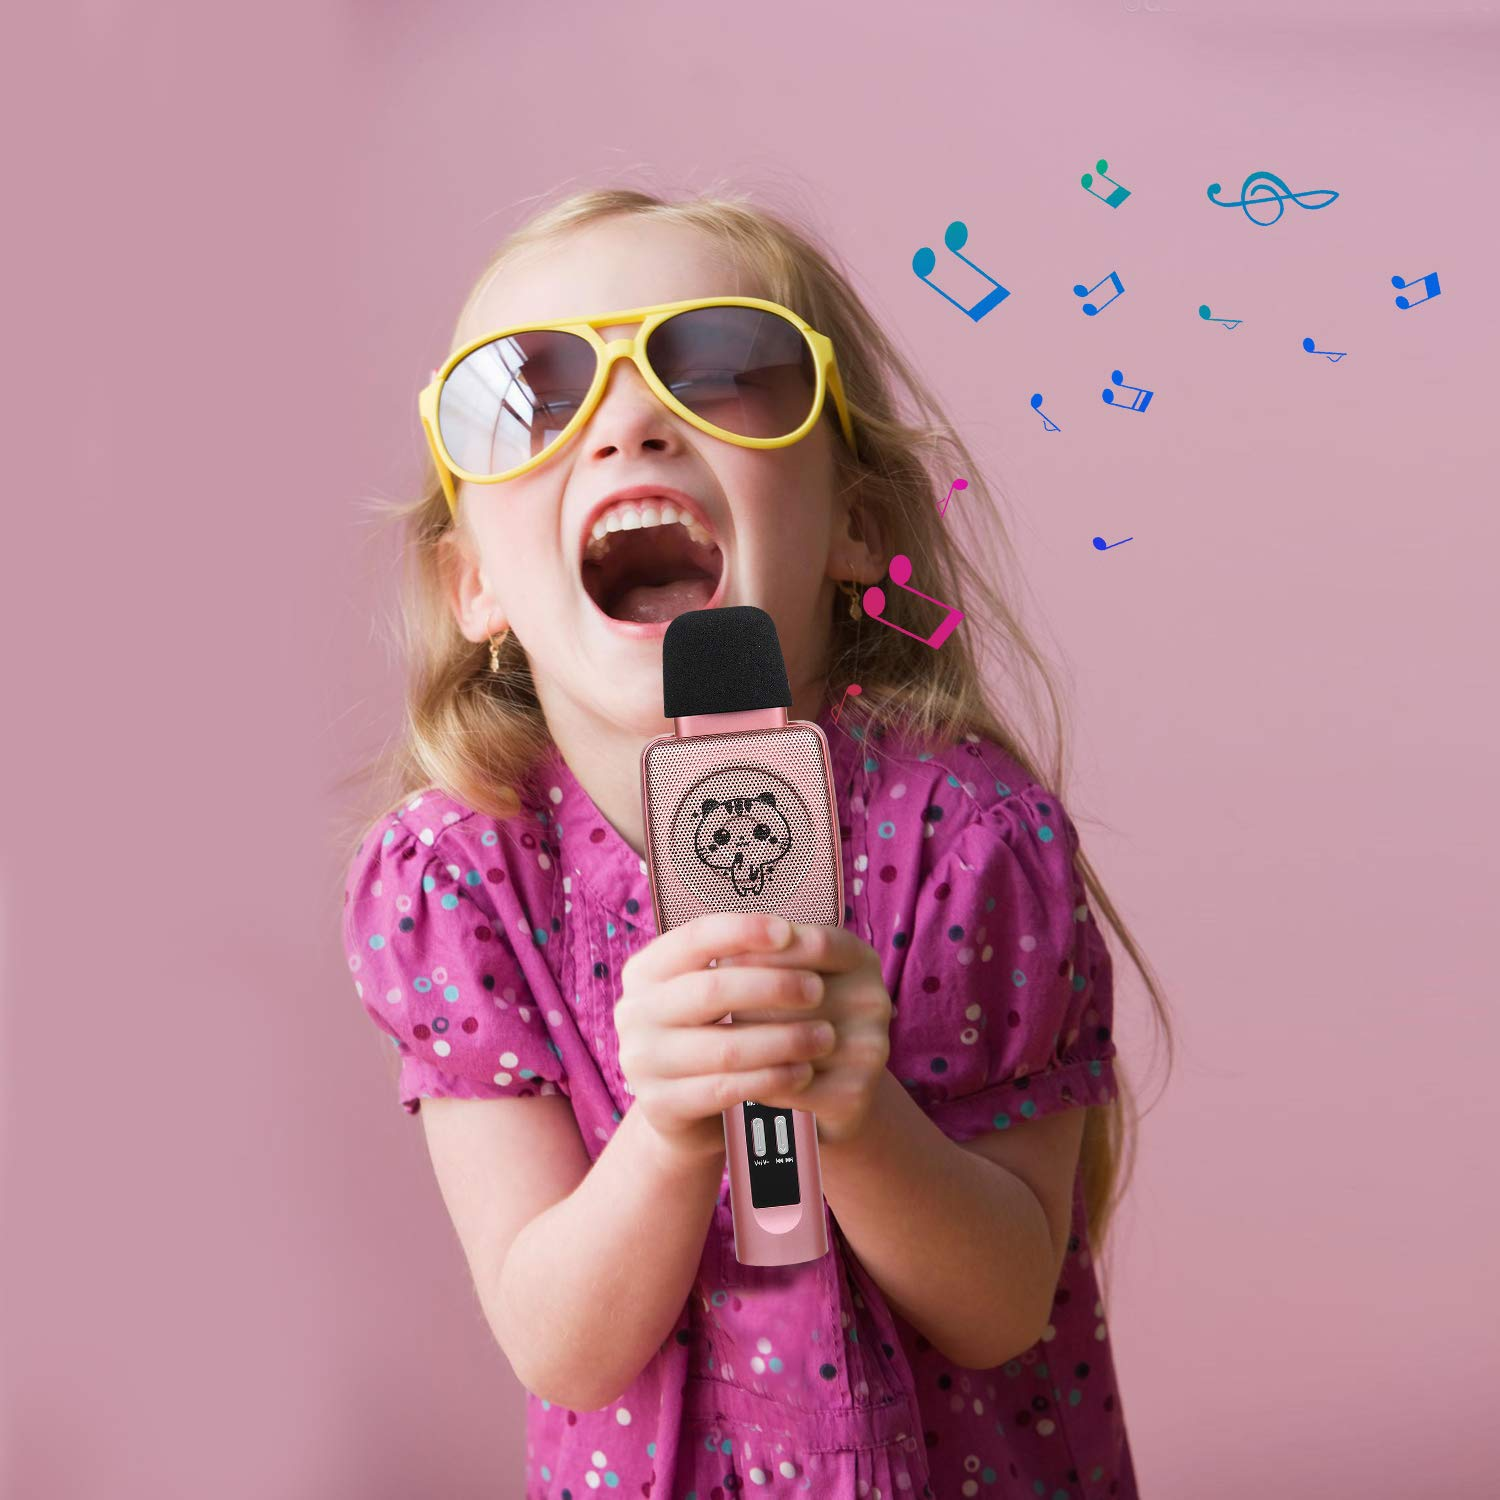 HOKLAN Kids Karaoke Microphone, Birthday Gifts for 3 4 5 6 7 8 9 Years Old Kids Girls, Birthday Presents & Toys for Children, Handheld Bluetooth Karaoke Machine with Voice Changer & Built-in Speaker by HOKLAN (Image #3)